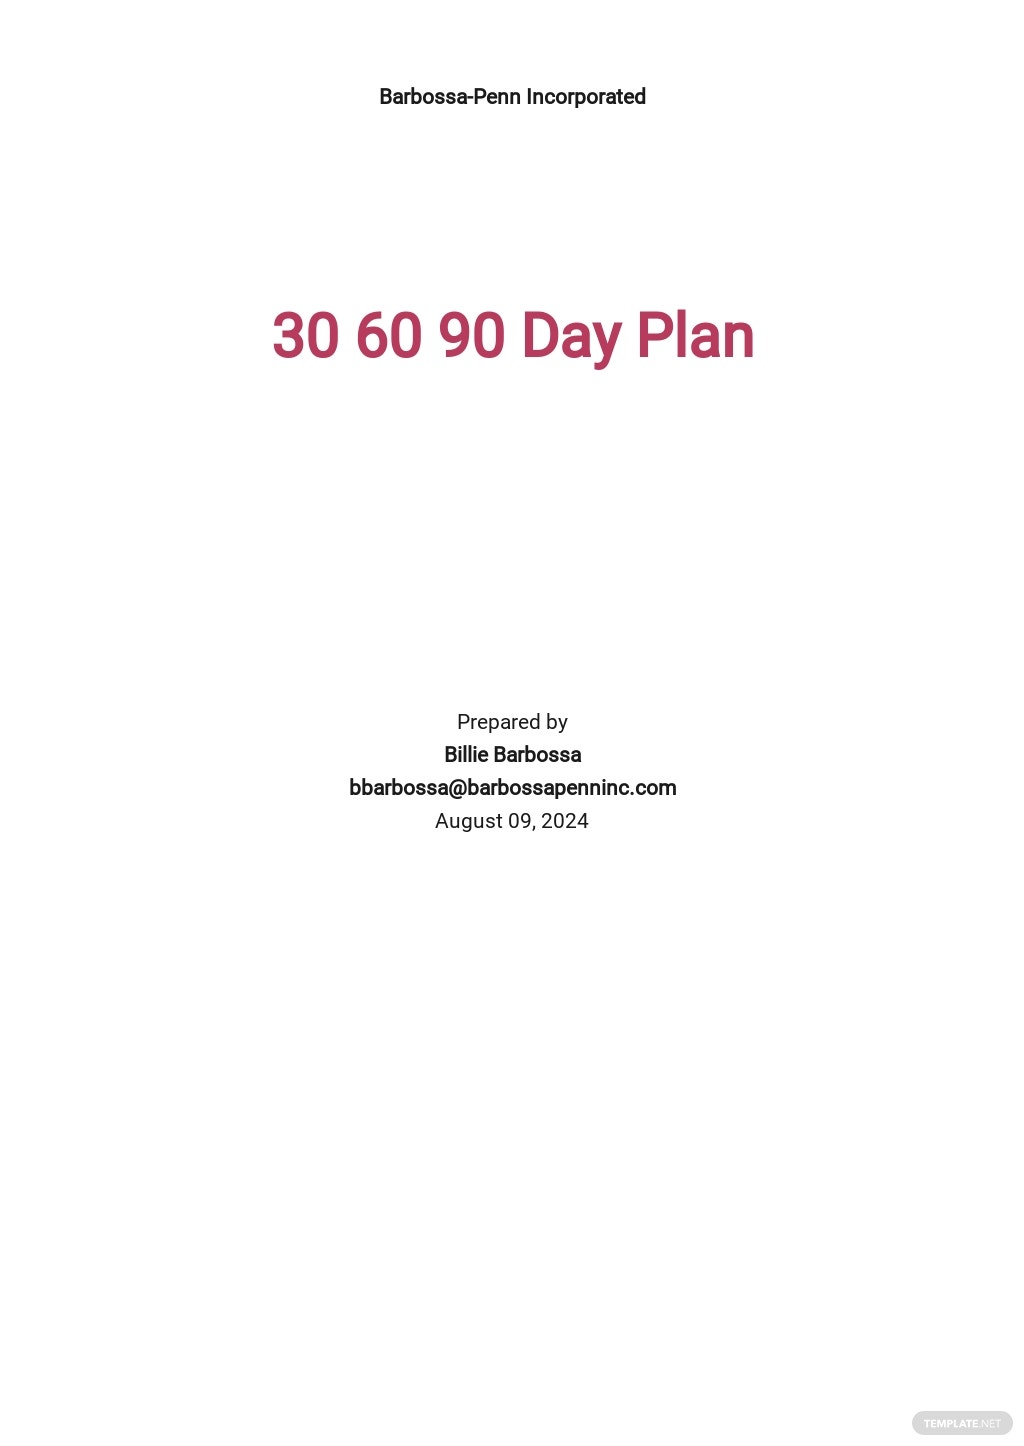 30-60-90-Day Operations Plan Template